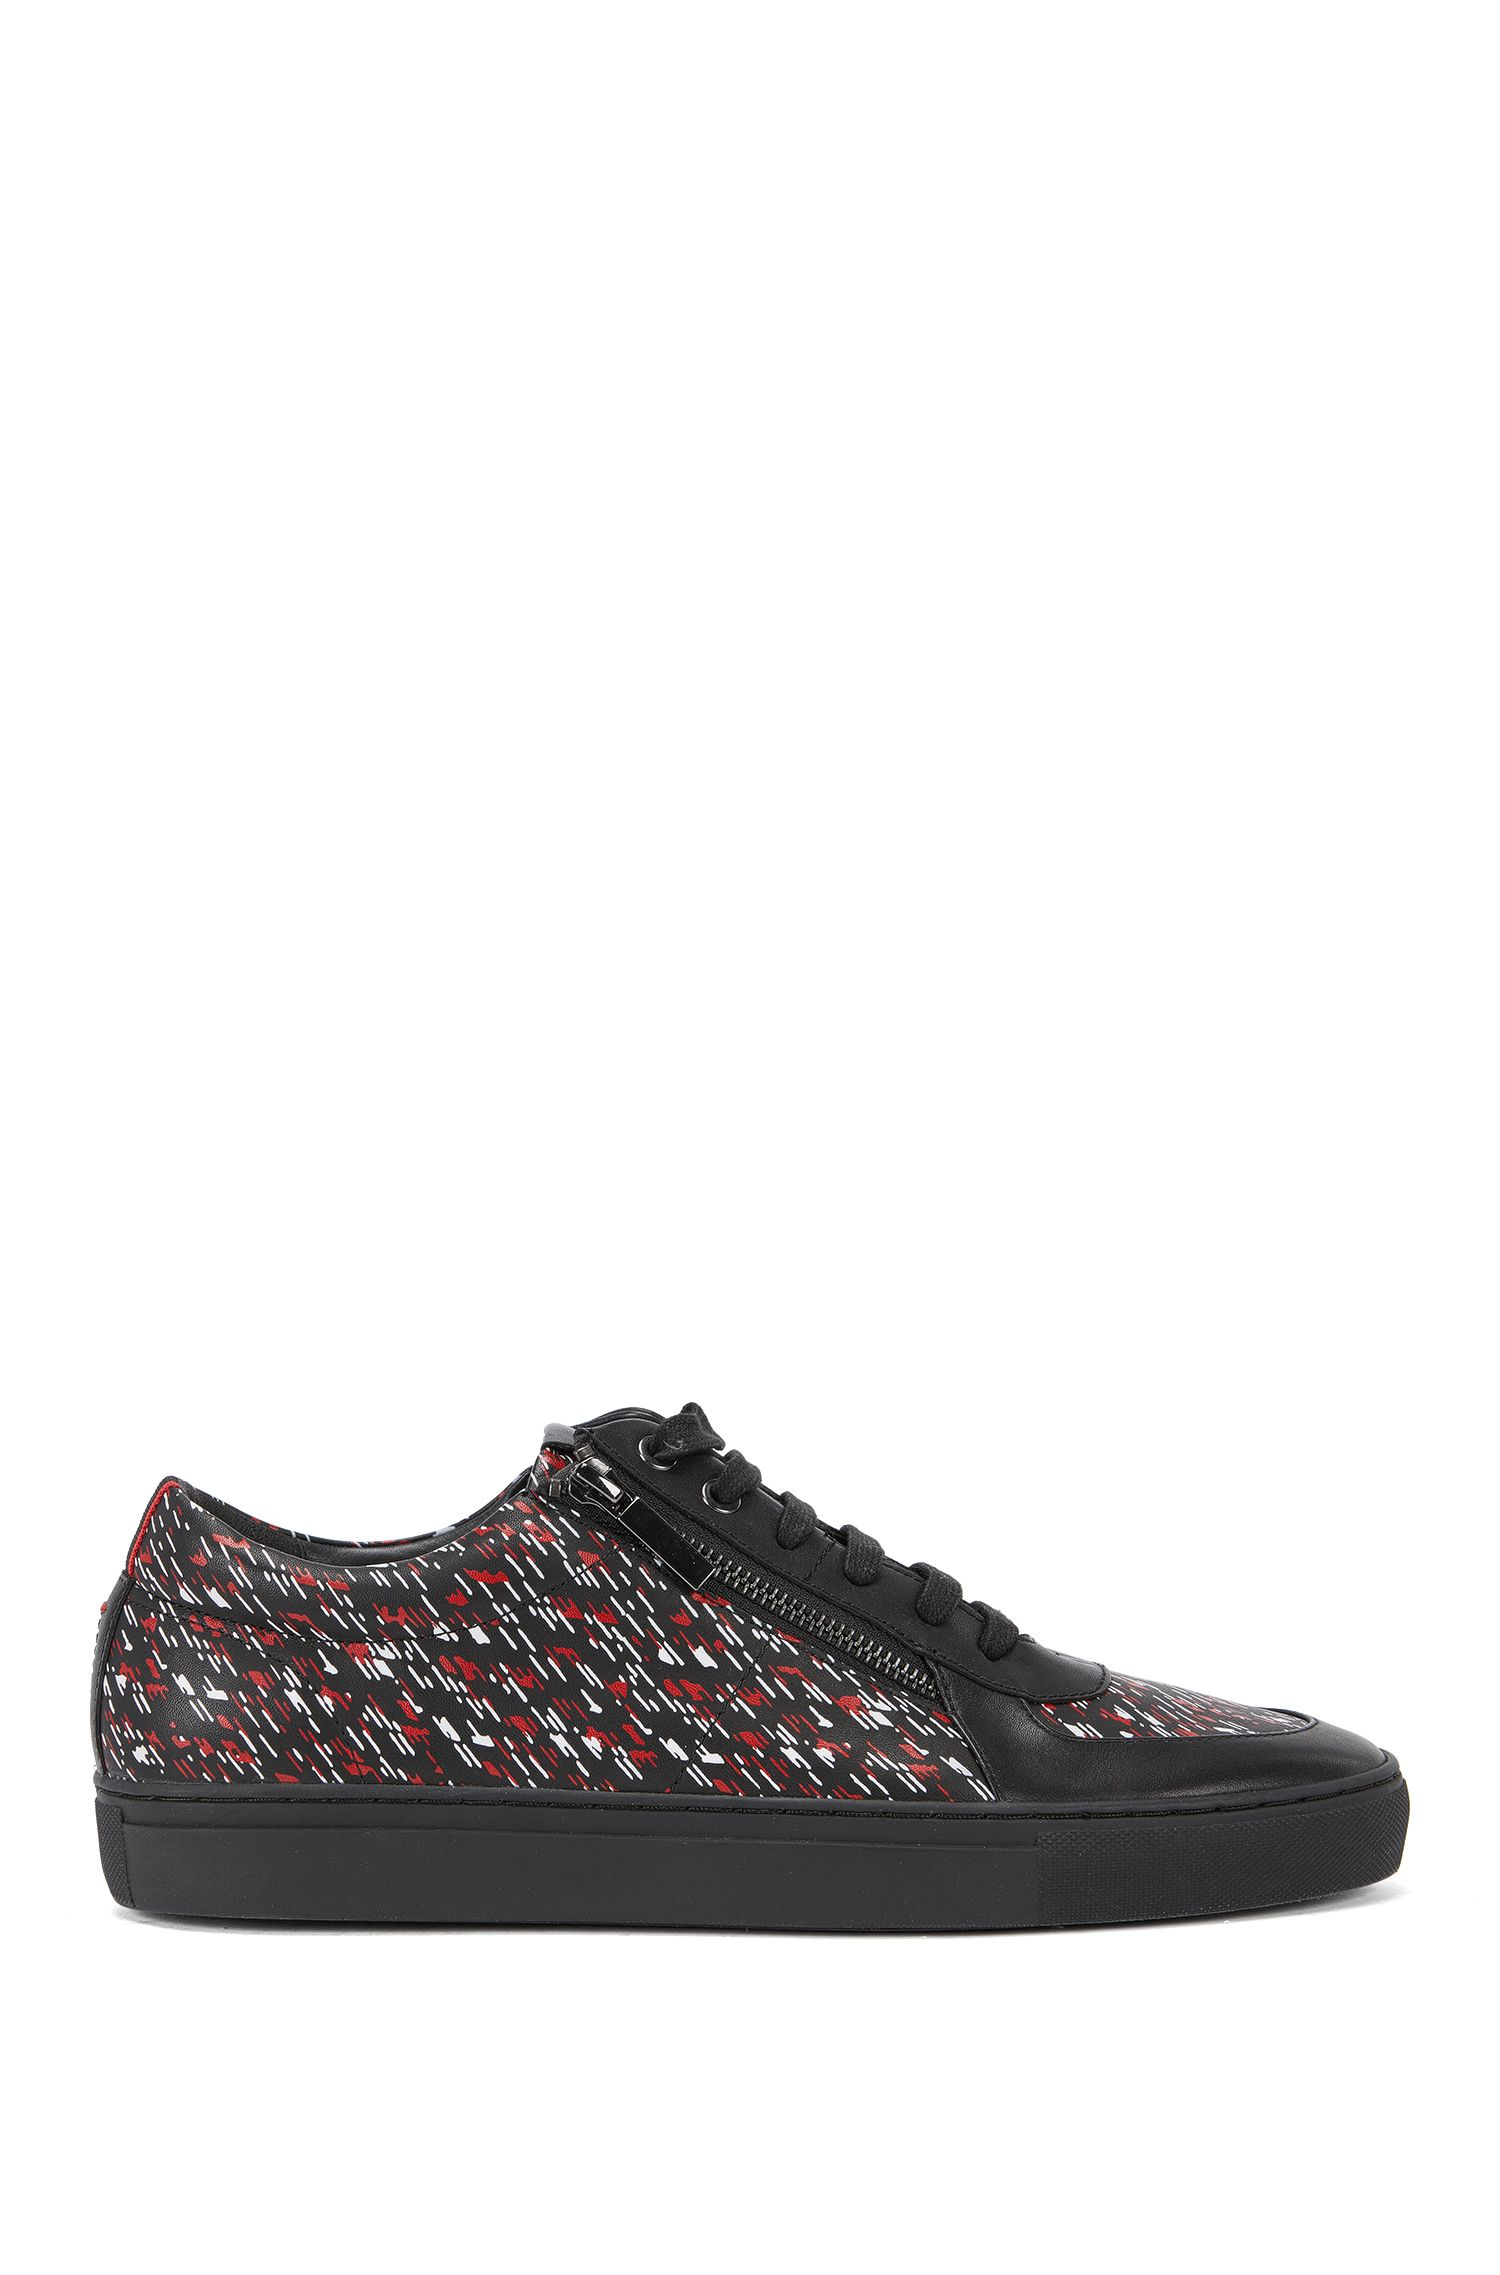 Low-top trainers in printed leather, Black